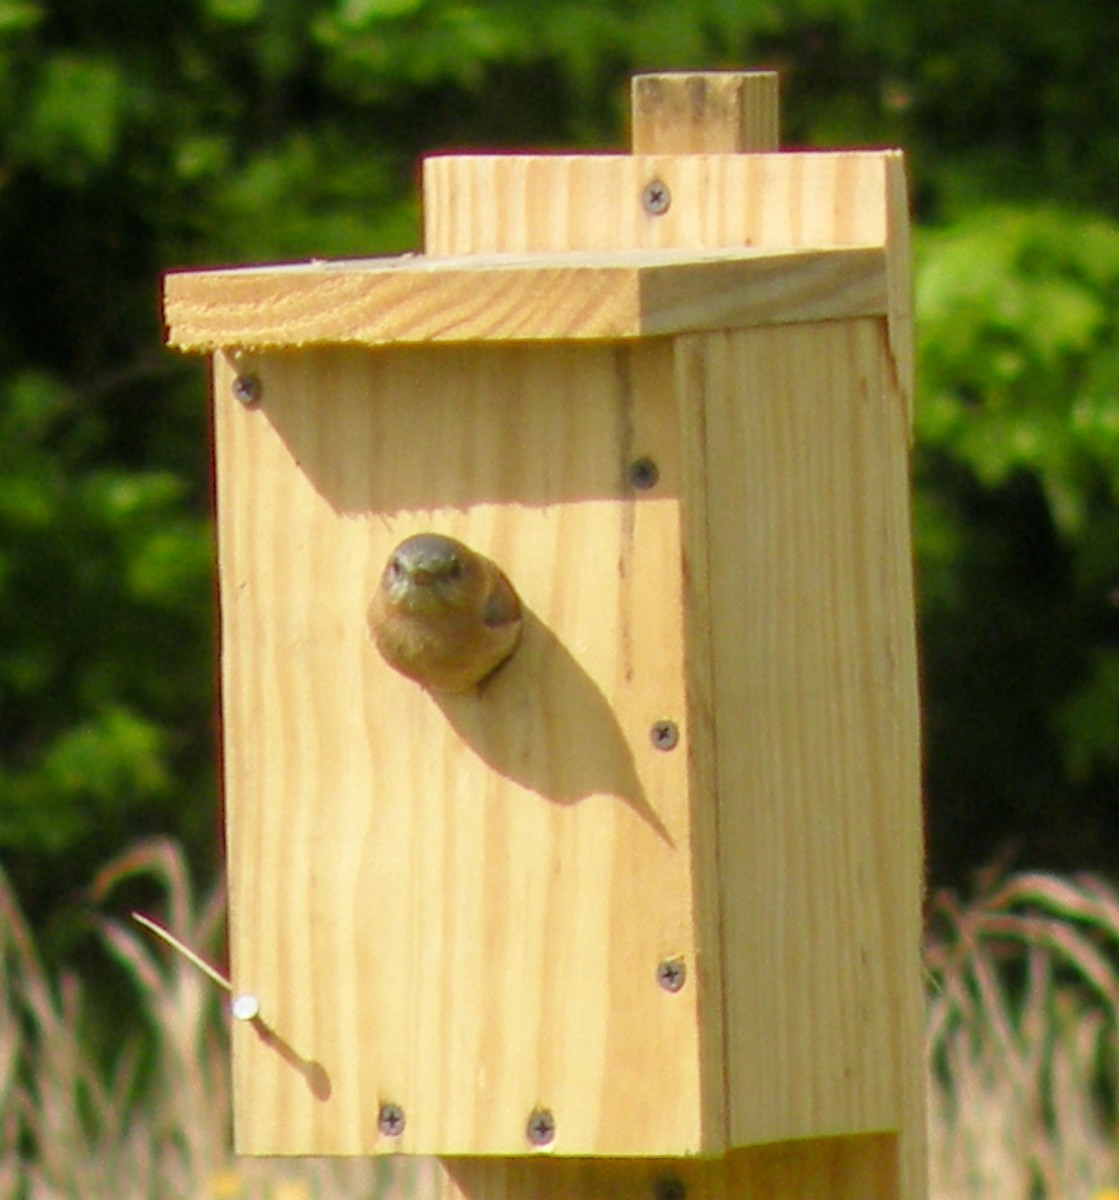 The female bluebird will sometimes peek out of the box while she is tending her eggs, perhaps hoping that her mate will deliver a tasty snack.